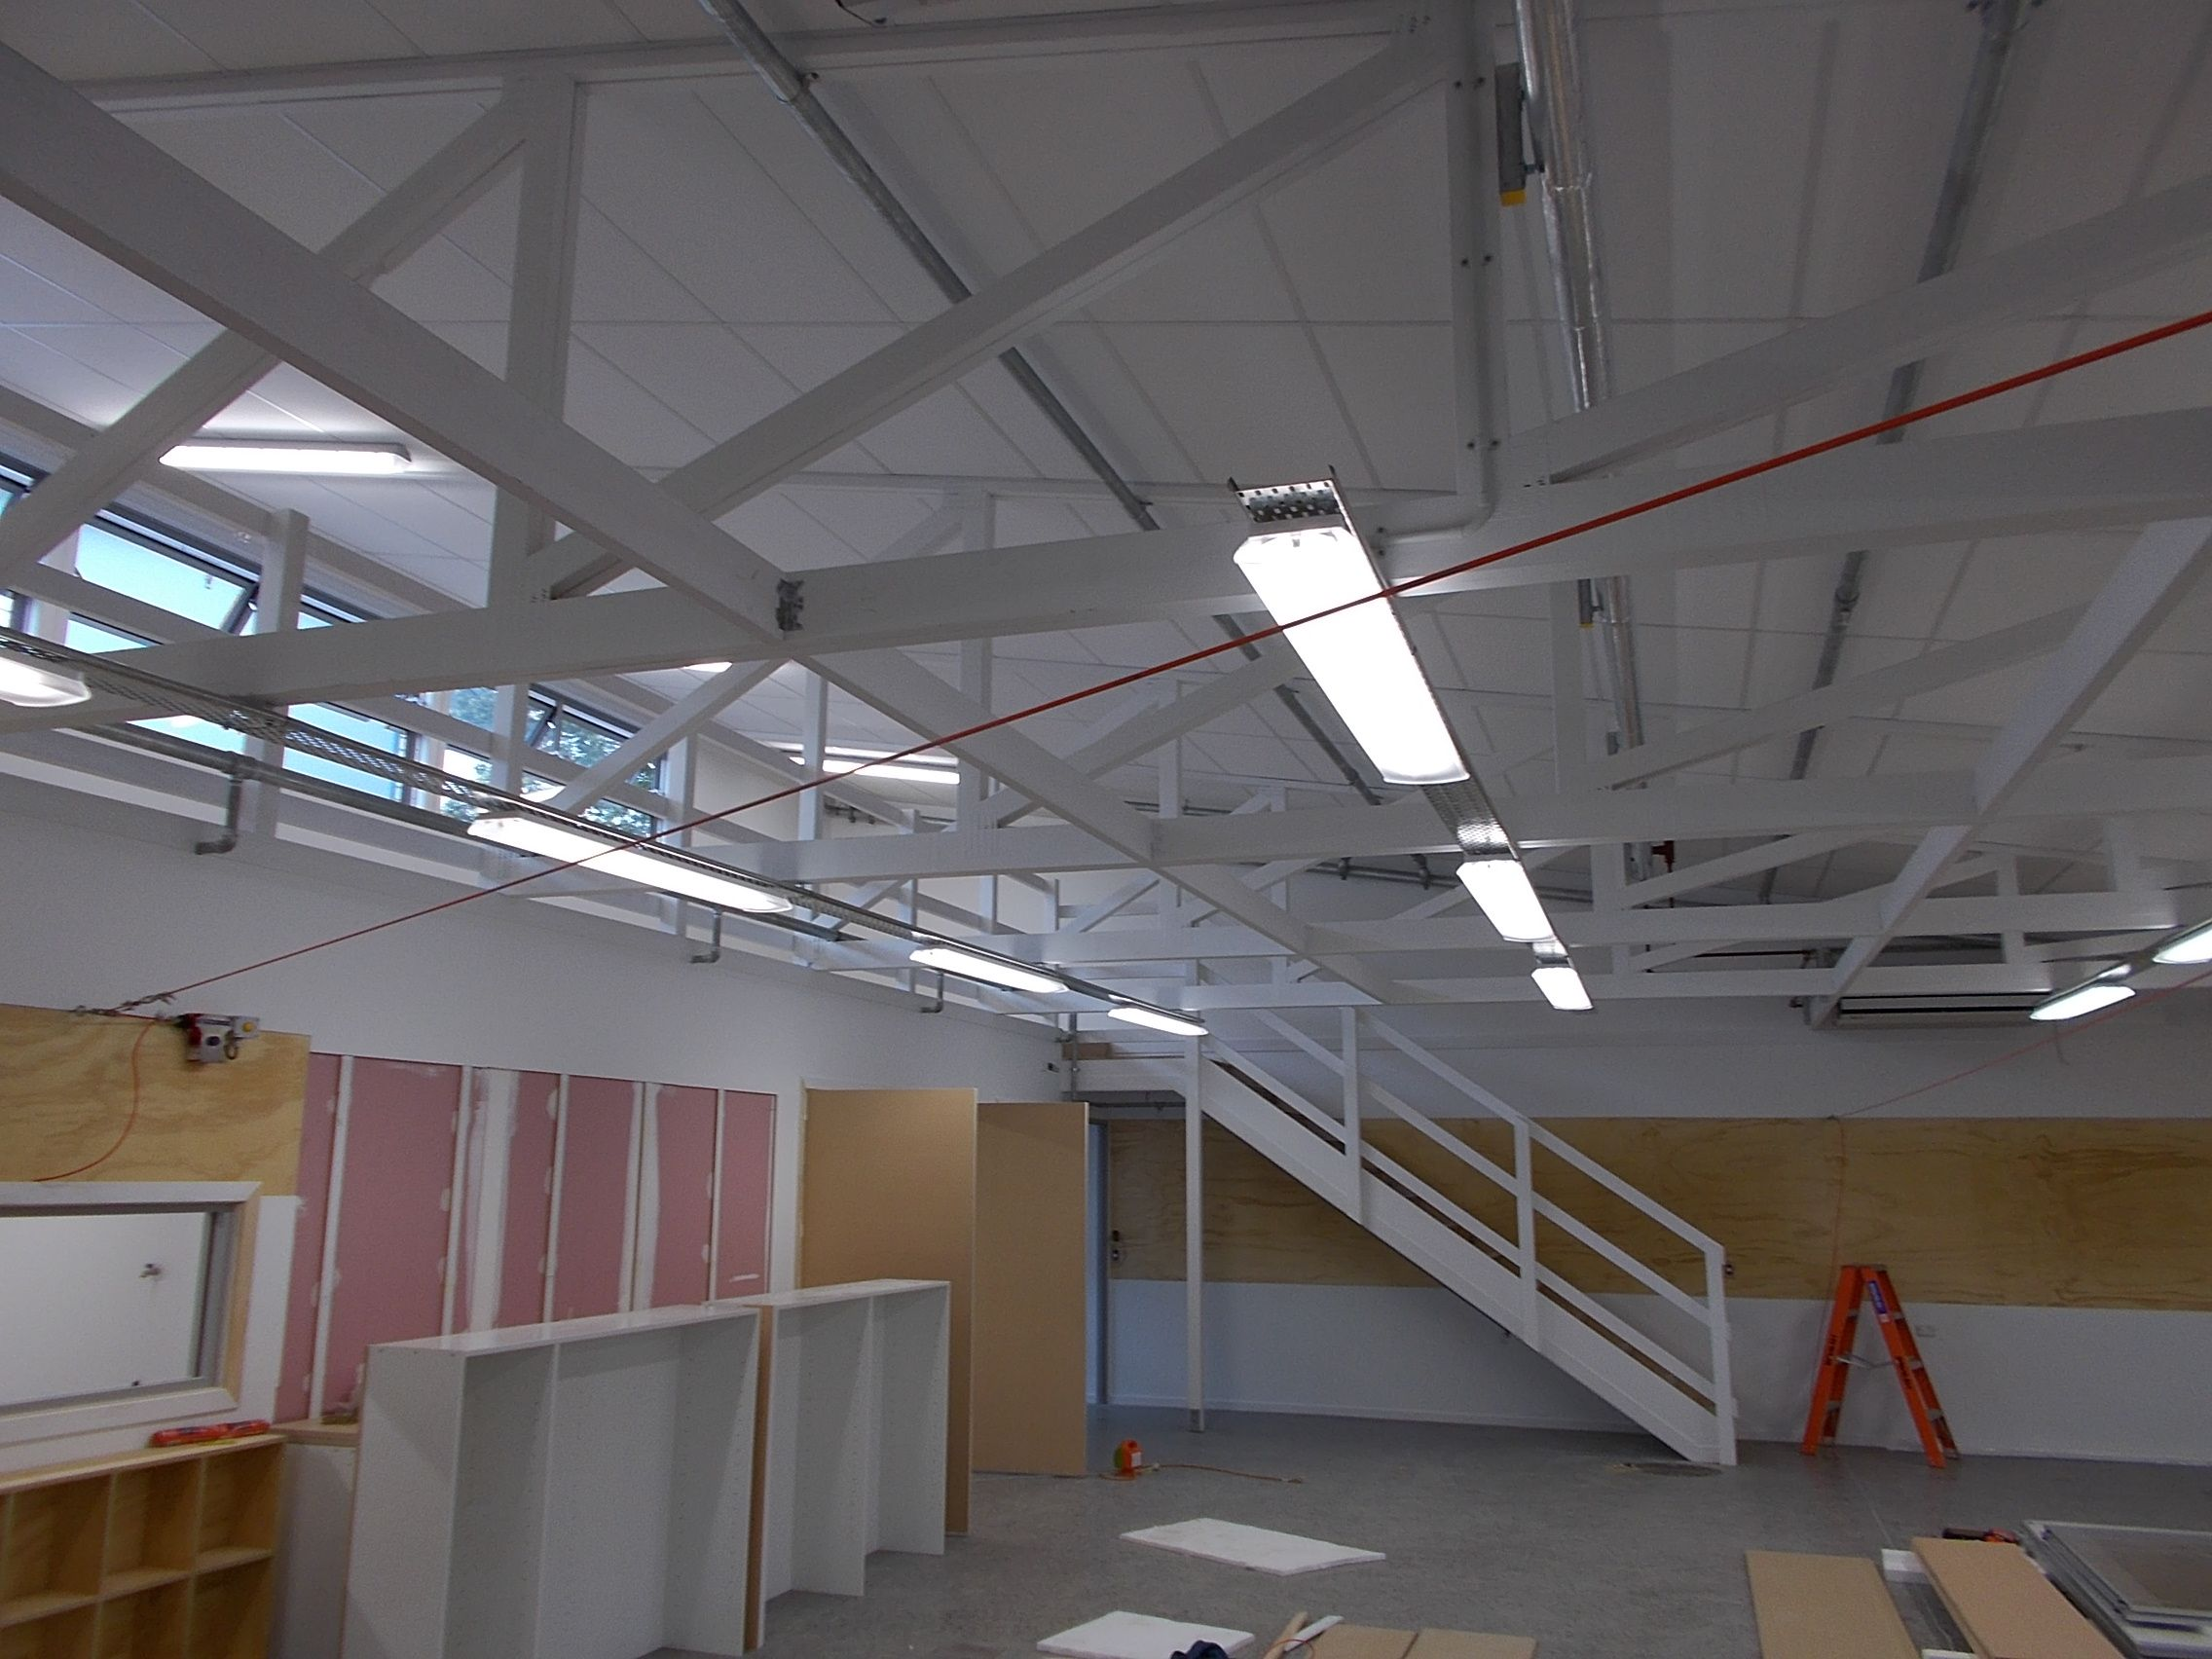 Rayner Consultants: Catching a glimpse of the mezzanine floor at Tauranga Boys College new Technology Block.